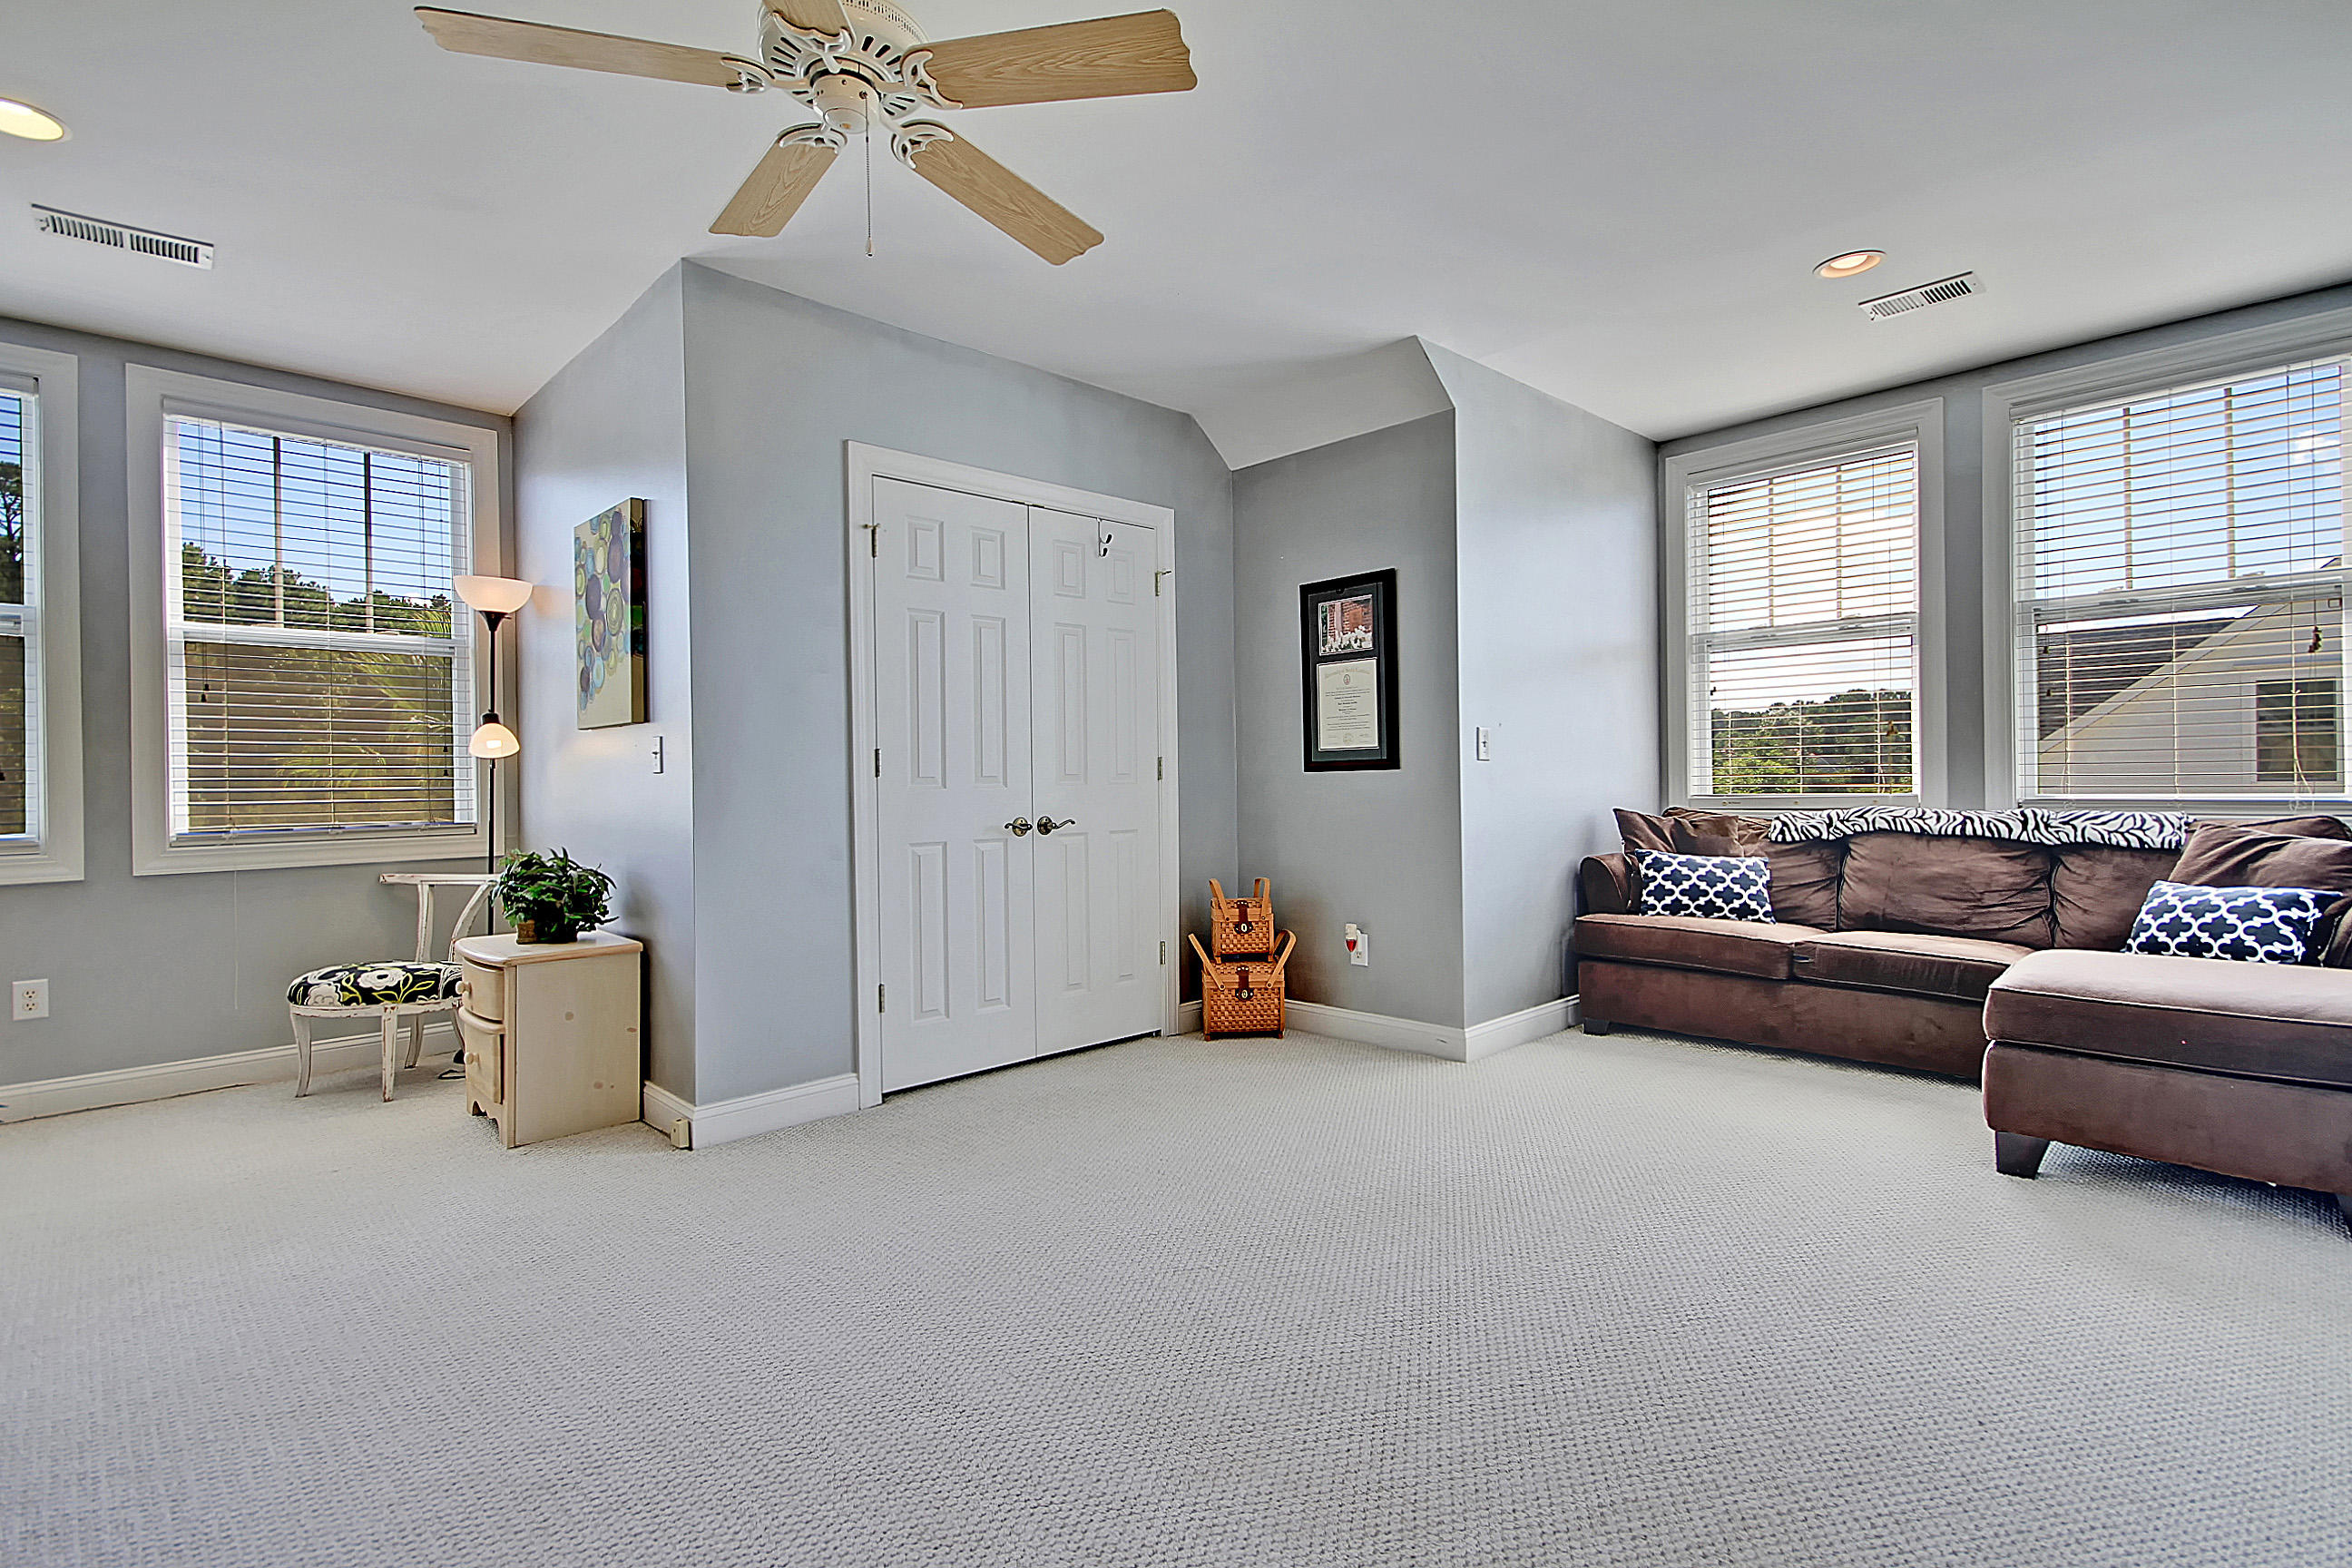 Rivertowne Country Club Homes For Sale - 1536 Rivertowne Country Club, Mount Pleasant, SC - 25